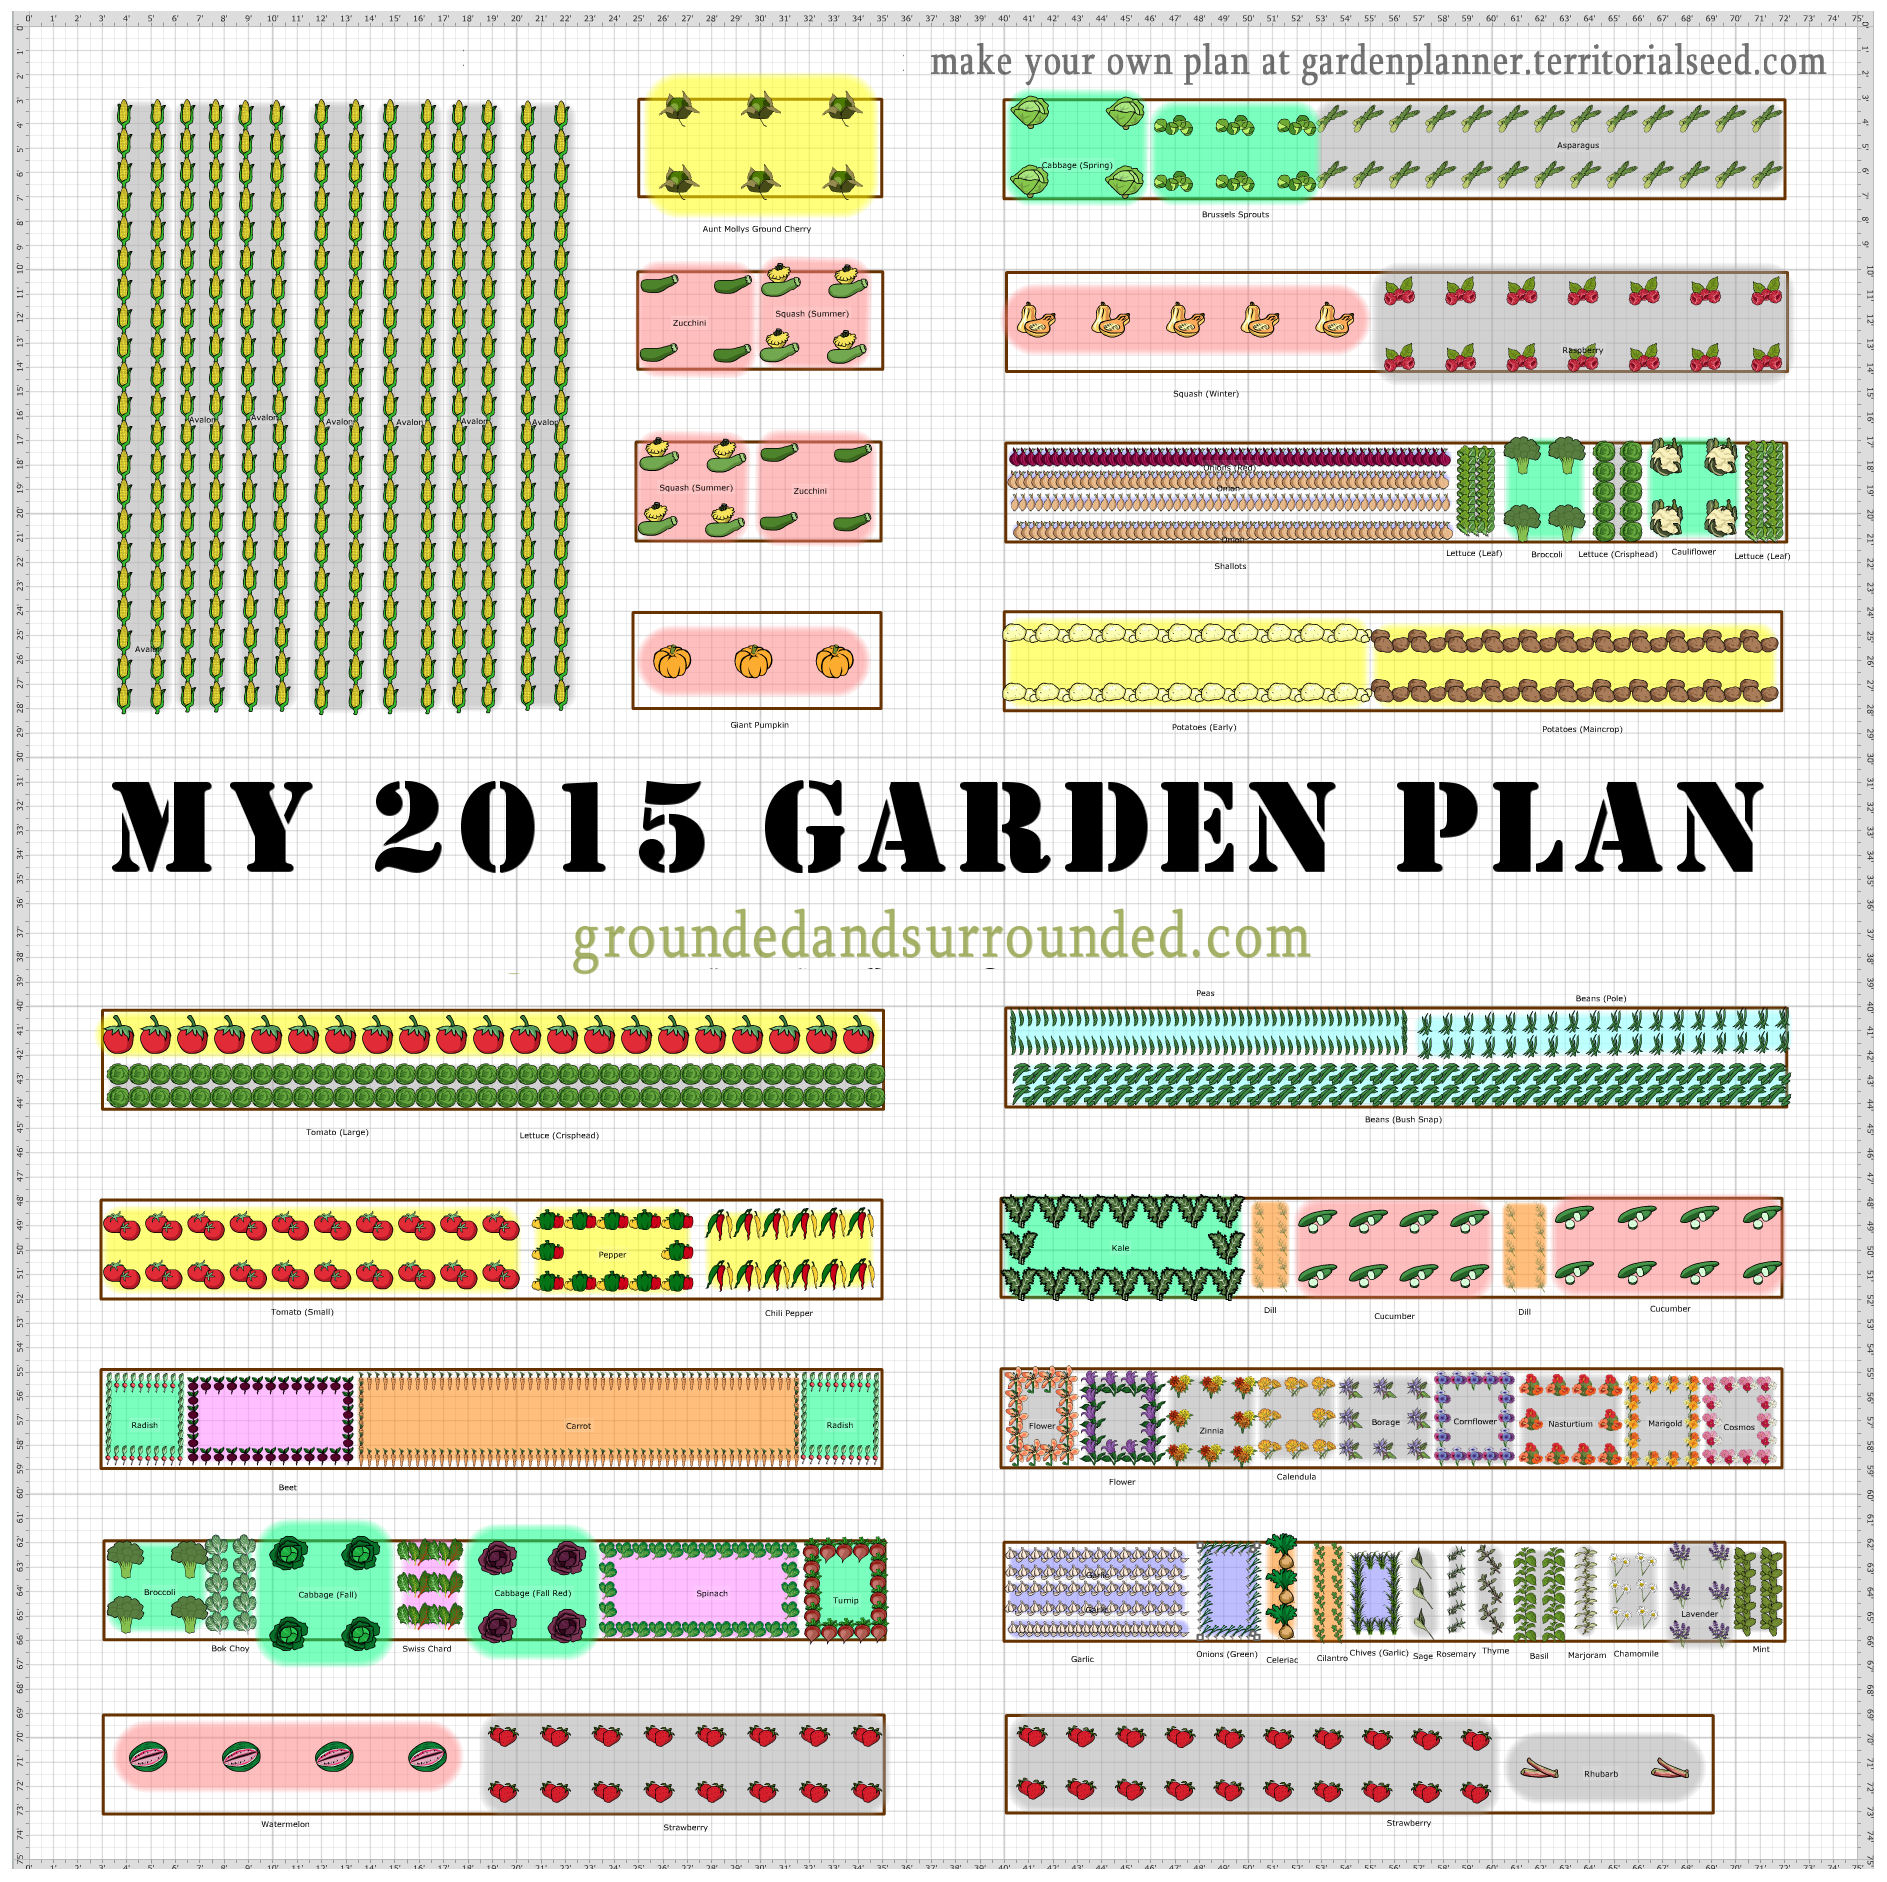 I Have Often Wished That More Gardeners Shared Their Large Vegetable Garden Plans Online This